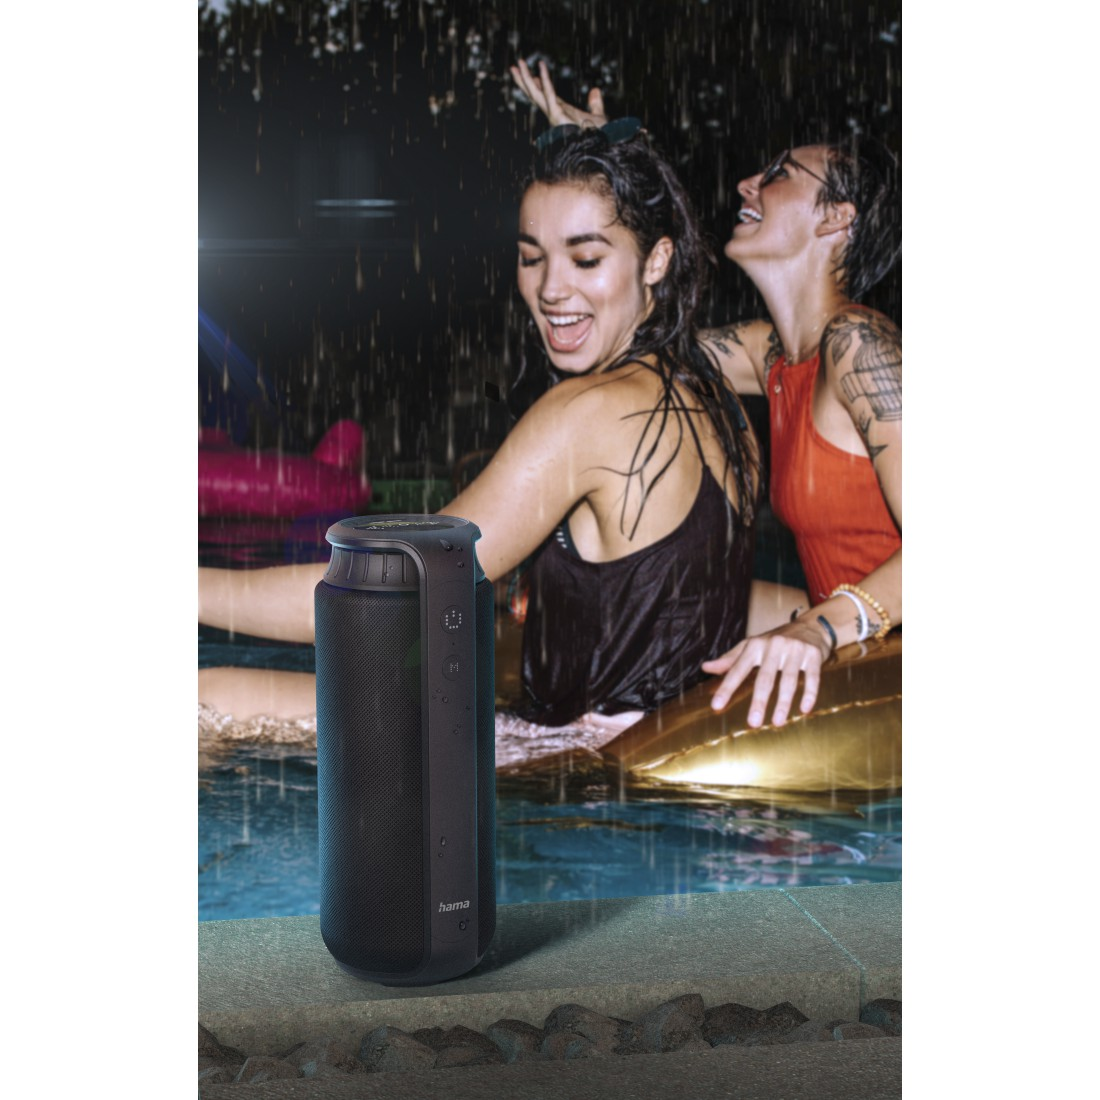 "awx2 High-Res Appliance 2 - Hama, Bluetooth® ""Pipe 2.0"" Loudspeaker, Waterproof, 24 W, black"